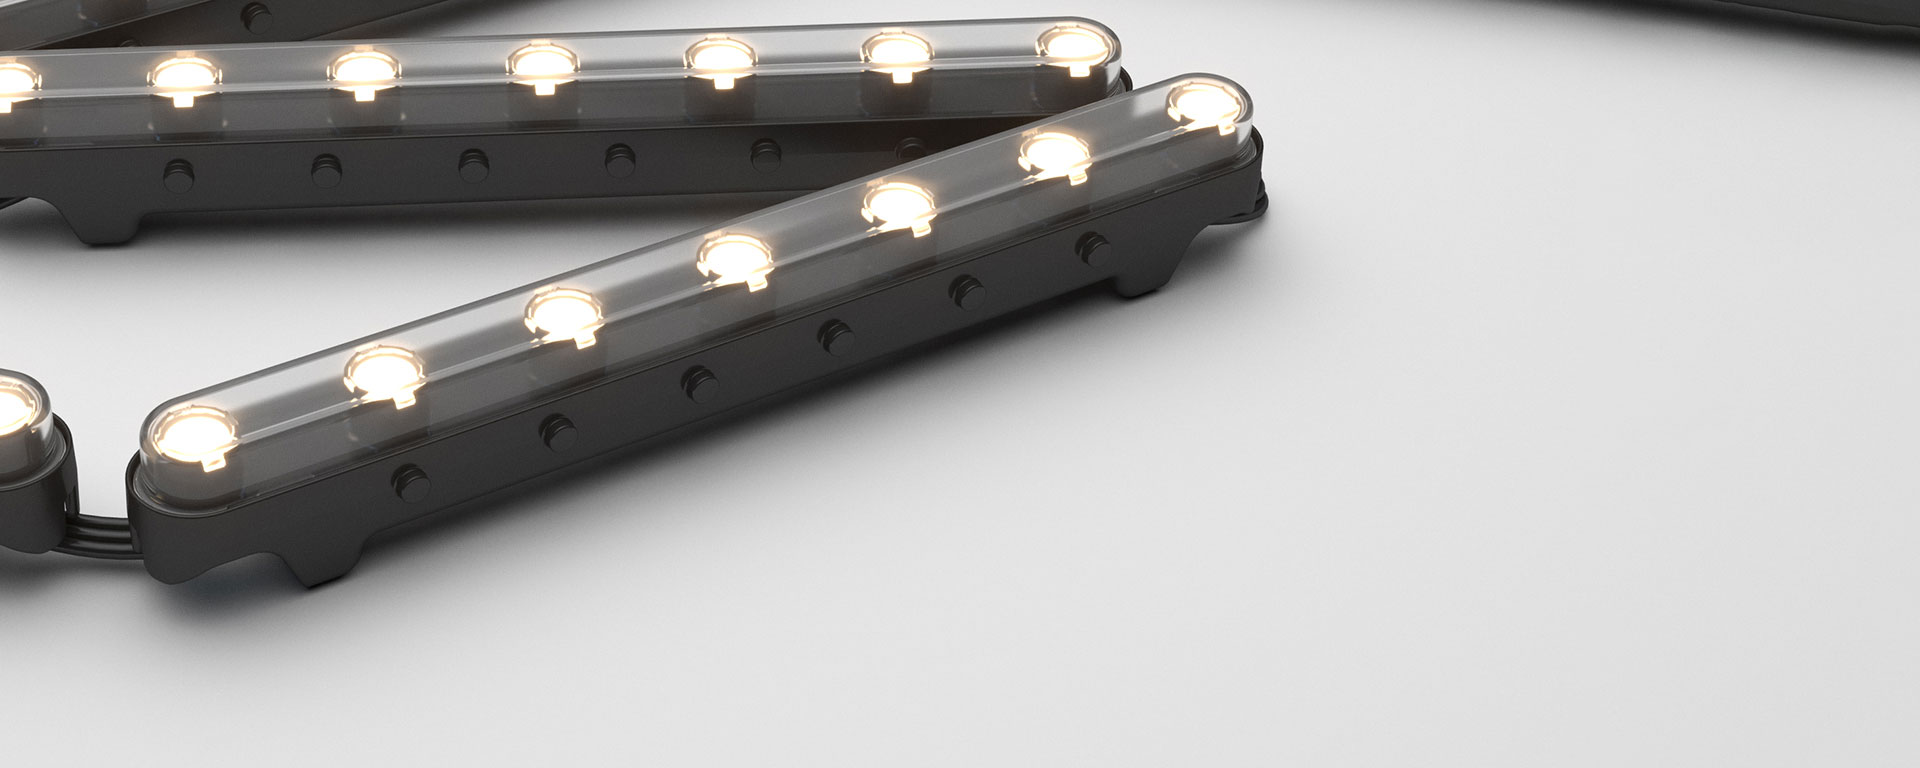 Aduro CL is a modular chain LED fitting that has a flexible connection between each segment, enabling use along curved surfaces to create wall washing and grazing effects, while retaining efficacy and durability of rigid technology.